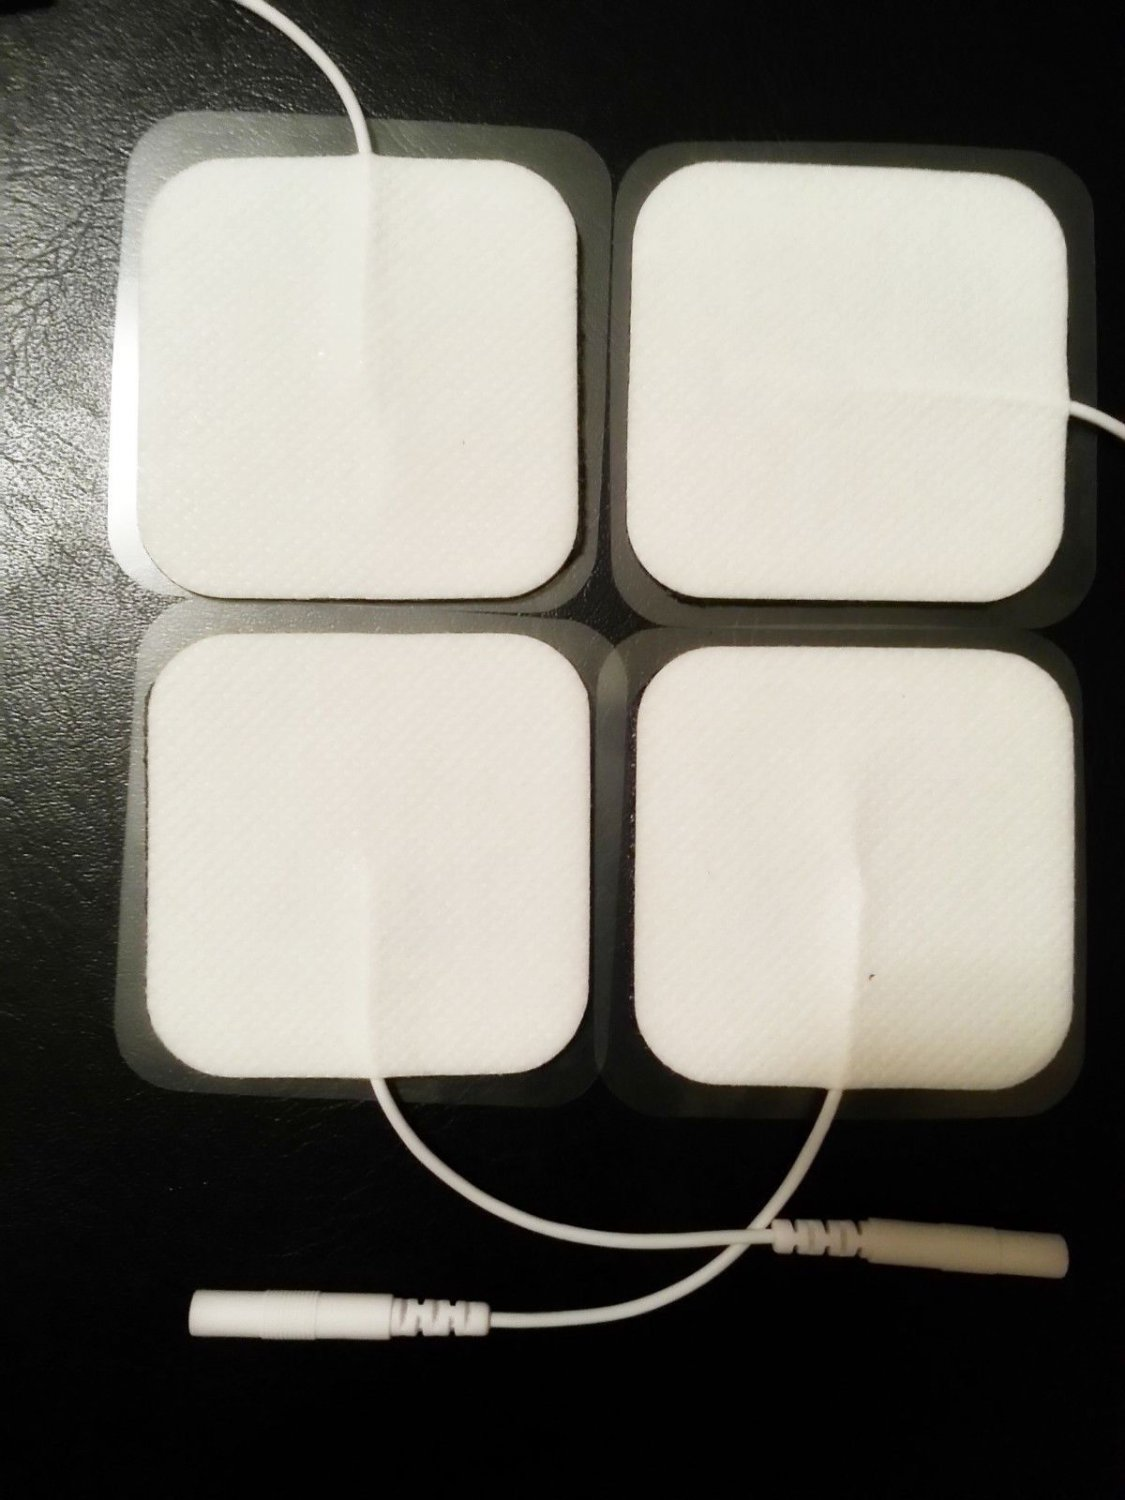 SQUARE SHAPED GEL ELECTRODES (4) SELF ADHESIVE MASSAGE PADS FOR TENS 2800 SYSTEM